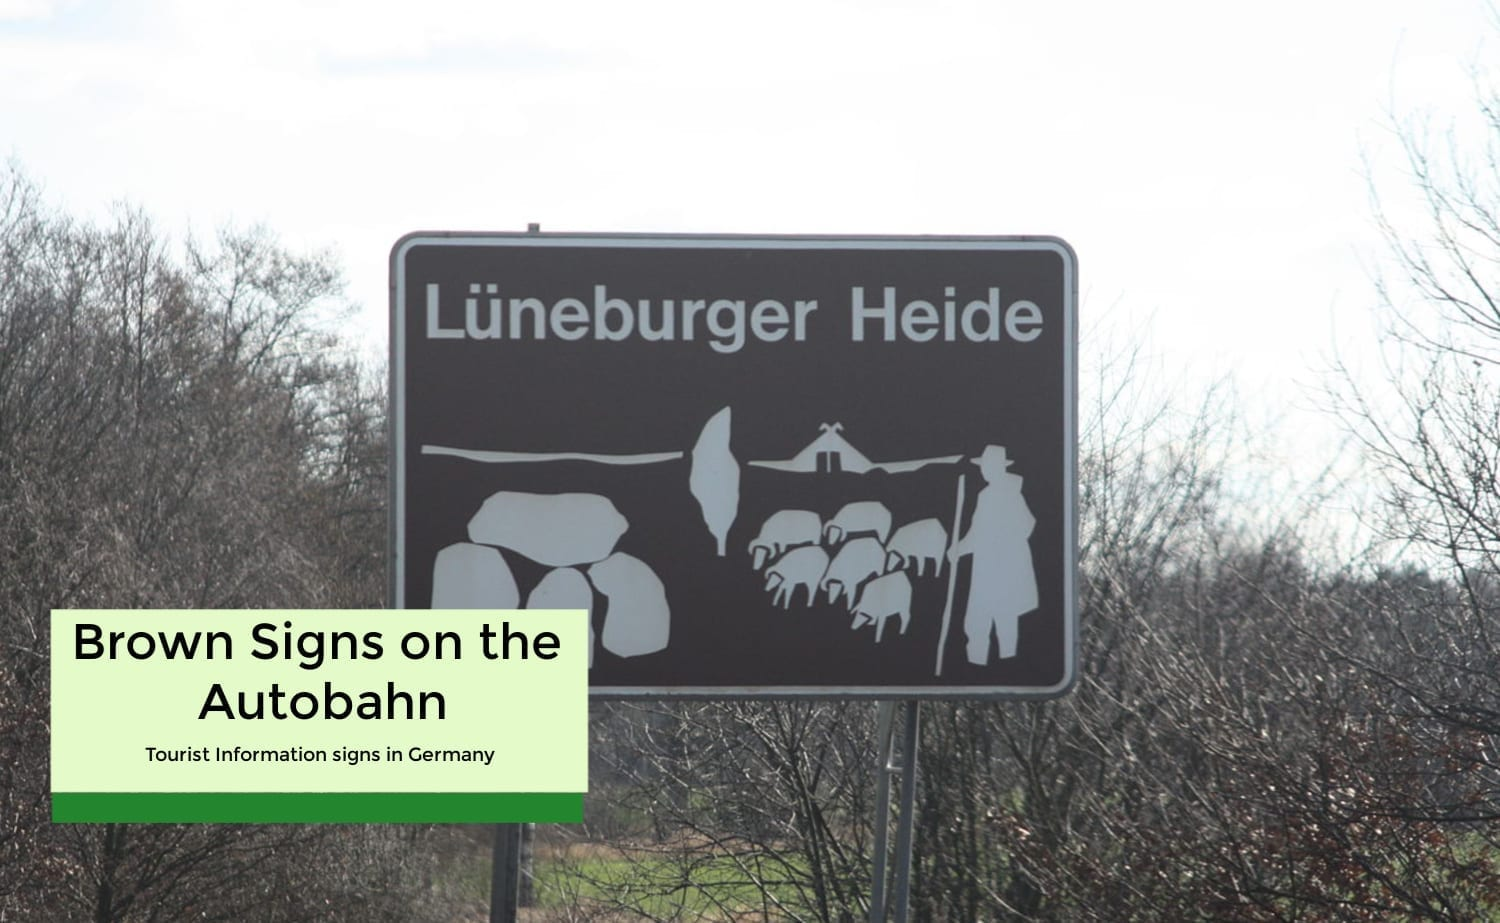 Brown Signs on the Autobahn- Tourist Attractions in Germany